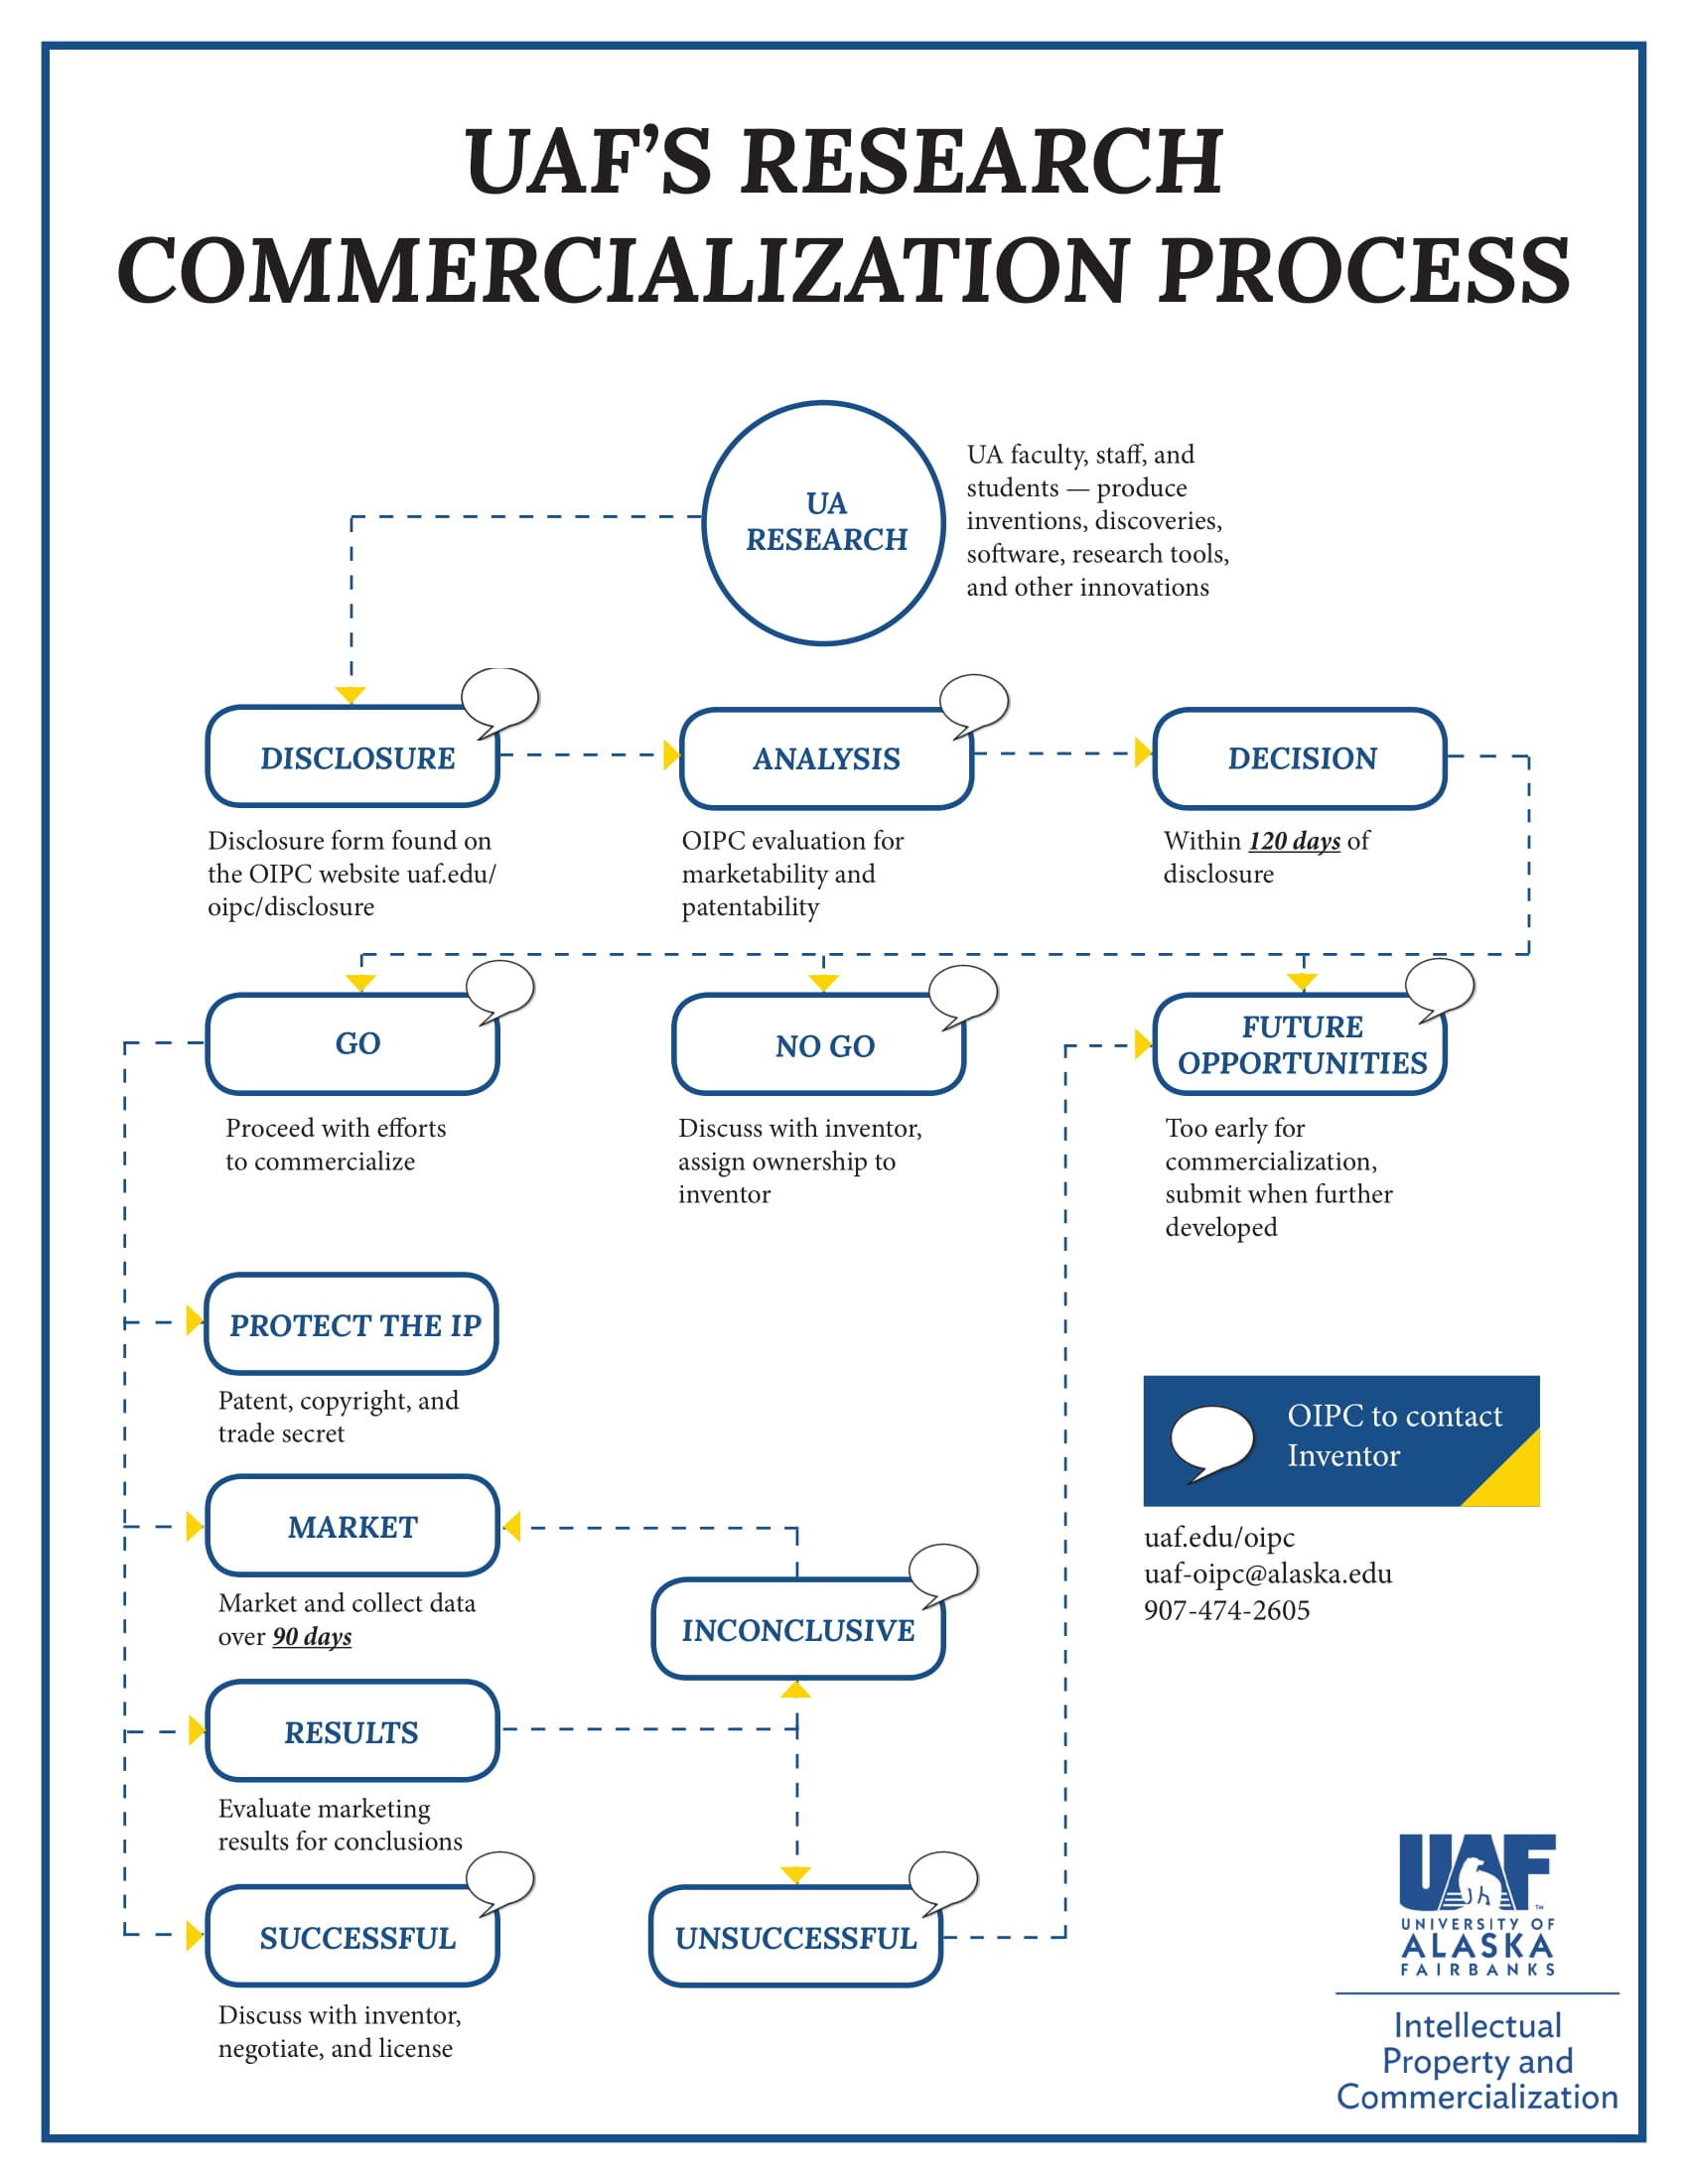 UAF's Research Commercialization Process image